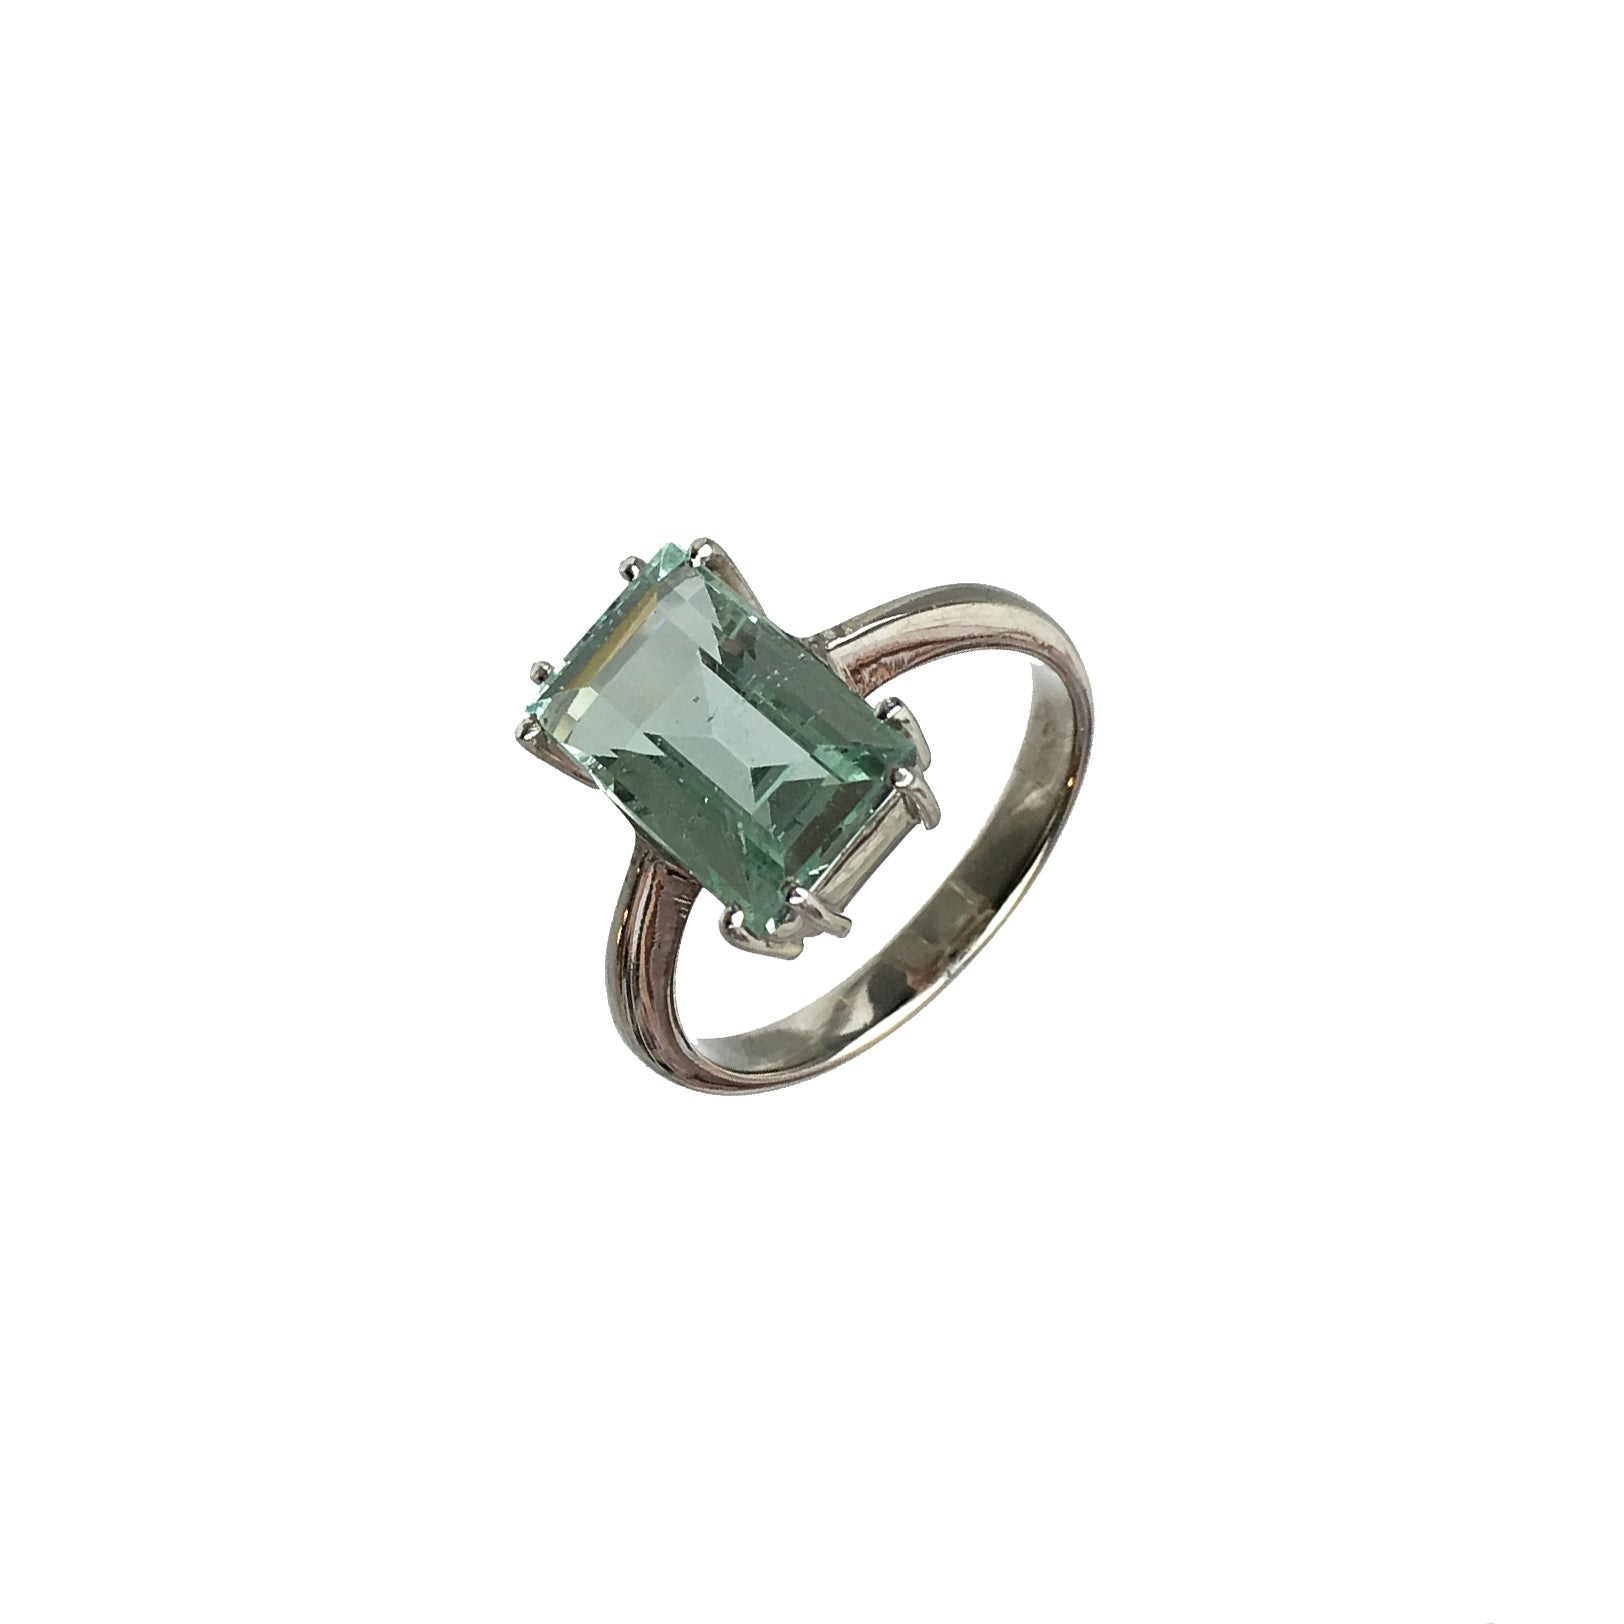 posts jewelers cut out emerald ring product recent d bridal sugarloaf h an guide